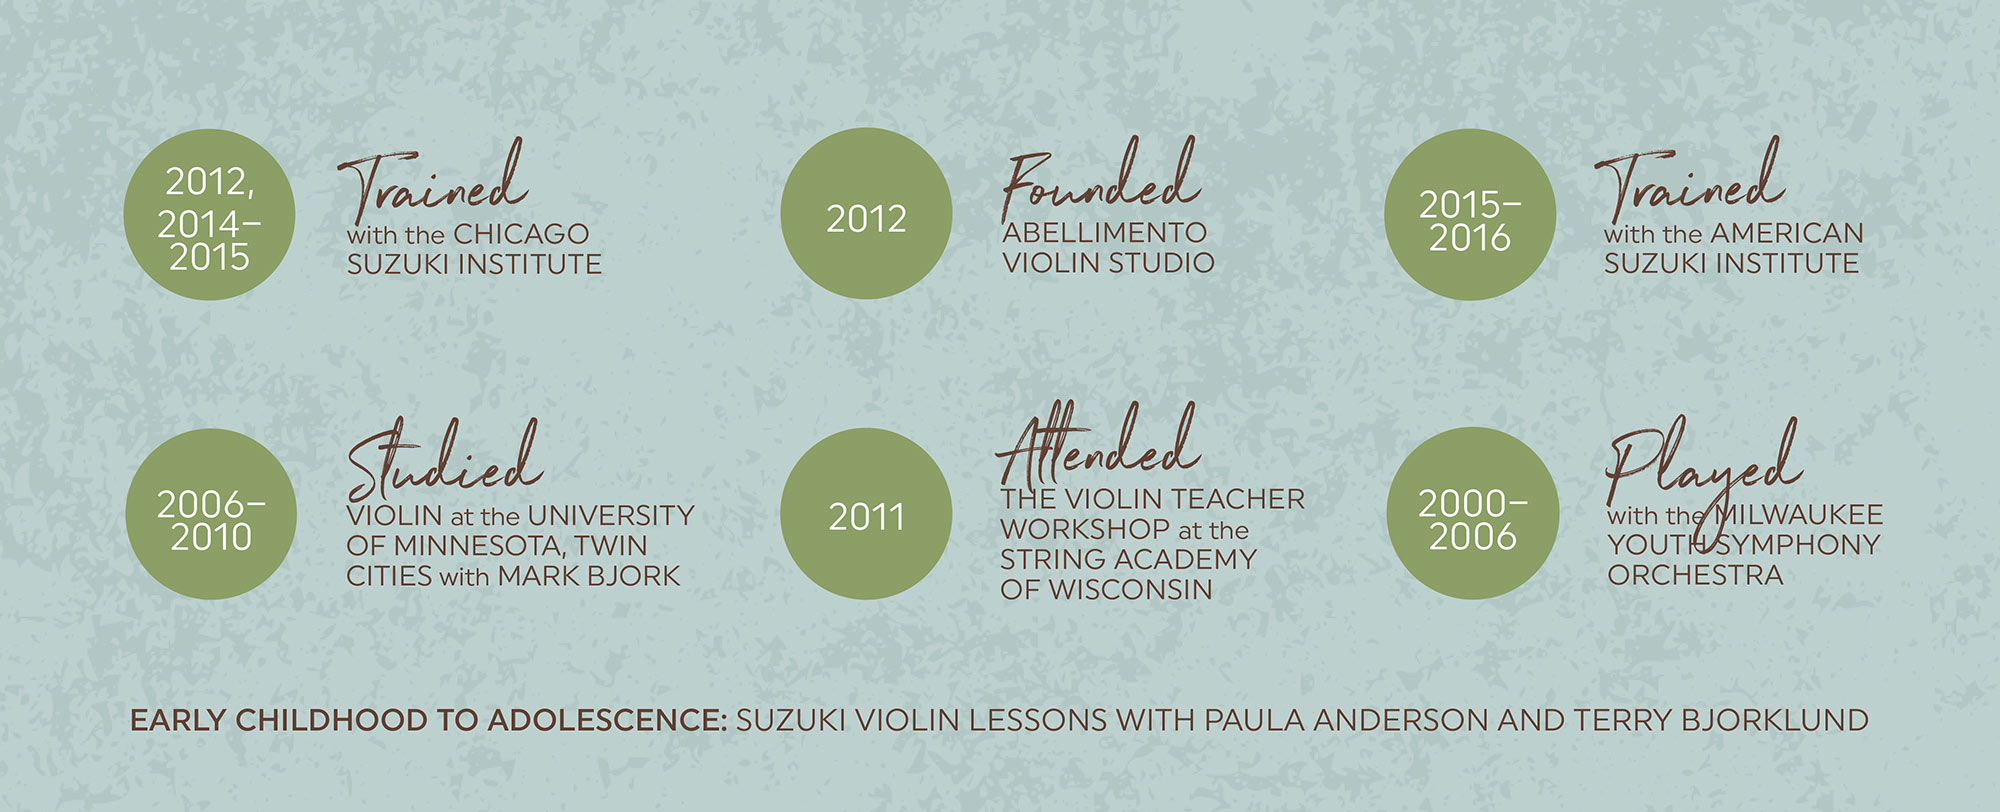 Abigail Peterson, Violin Teacher and Owner of Abellimento Violin Studio  |  Suzuki Violin Lessons in Milwaukee, WI